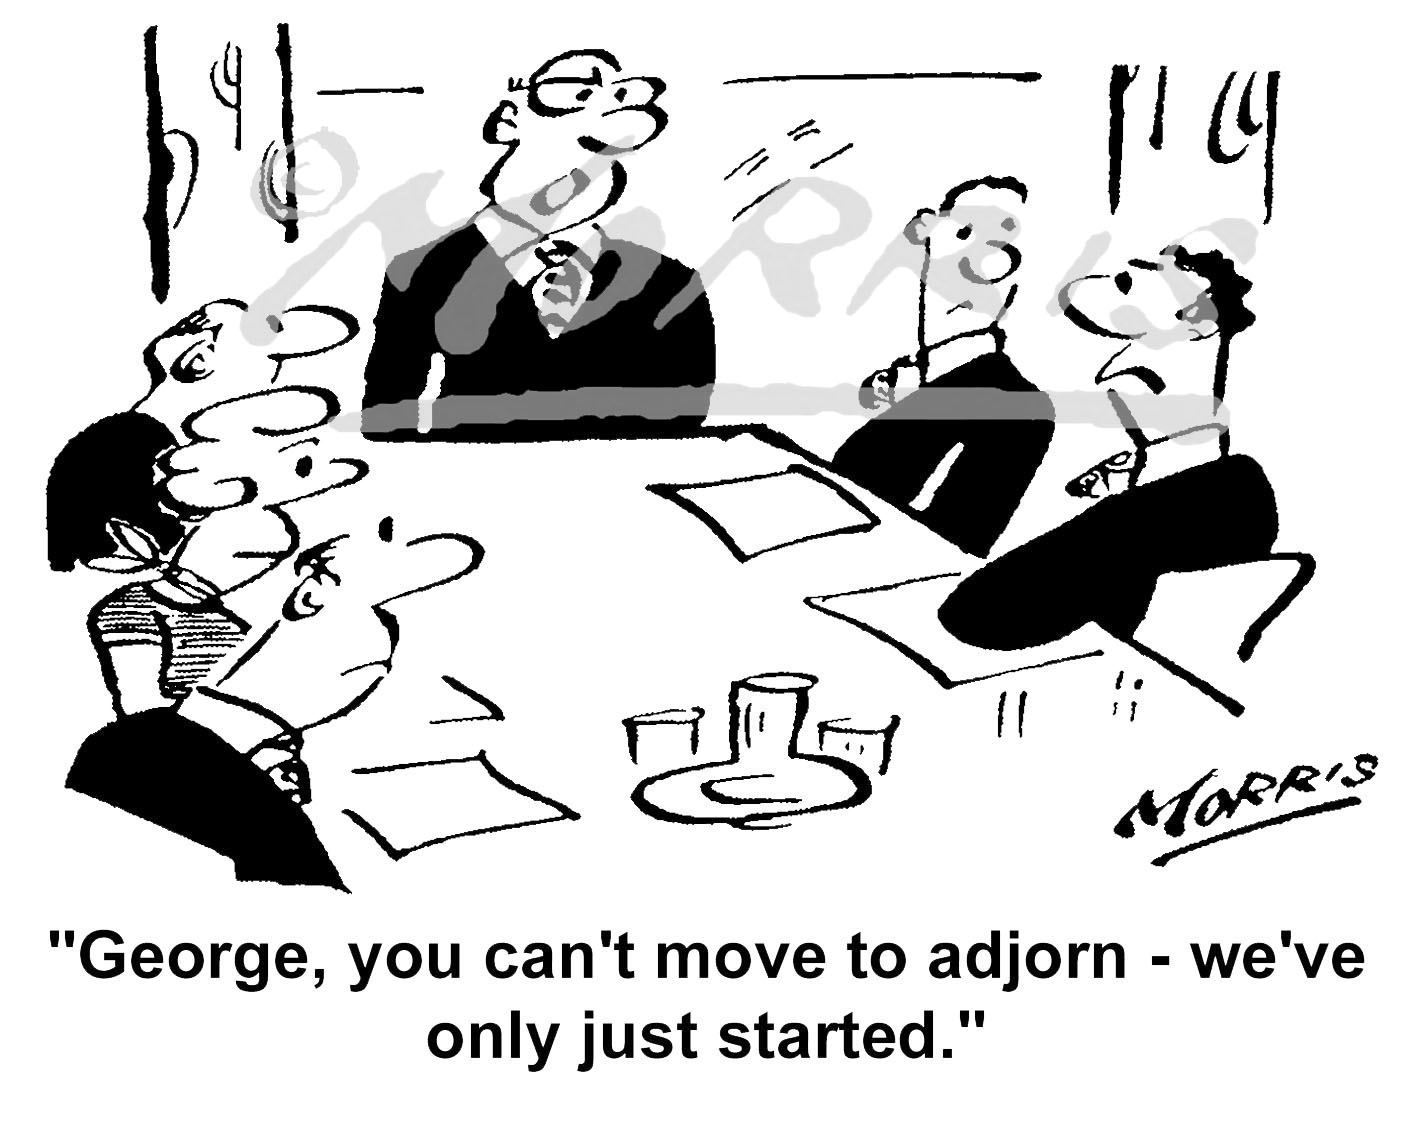 Boardroom meeting cartoon, Chairman cartoon, CEO cartoon, Managing Director cartoon – Ref: 5538bw